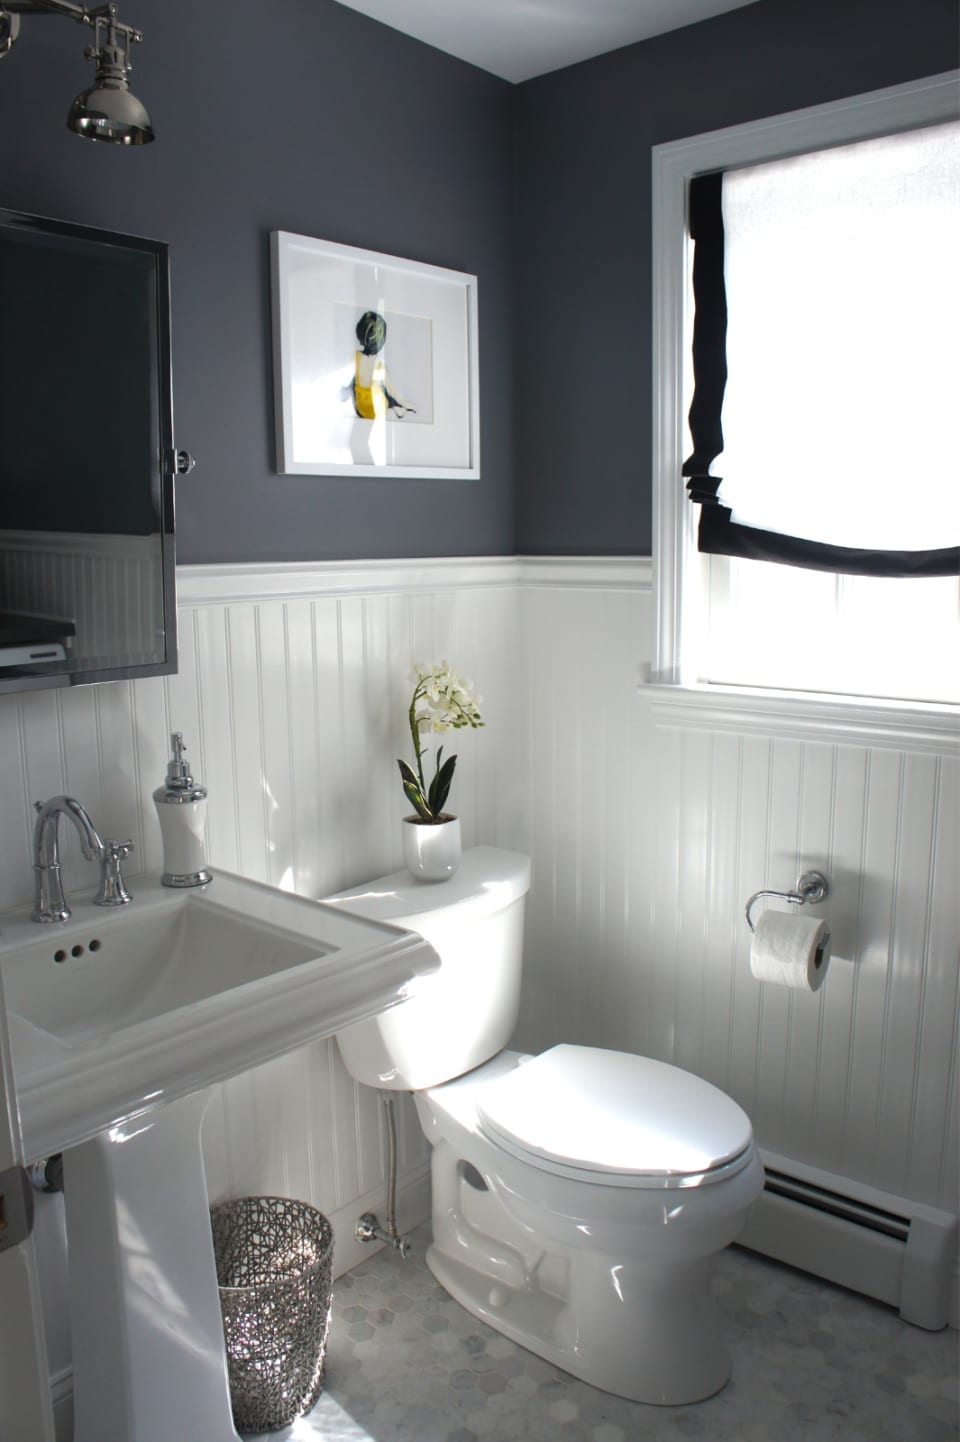 Bathroom wainscoting – what it is and how to use